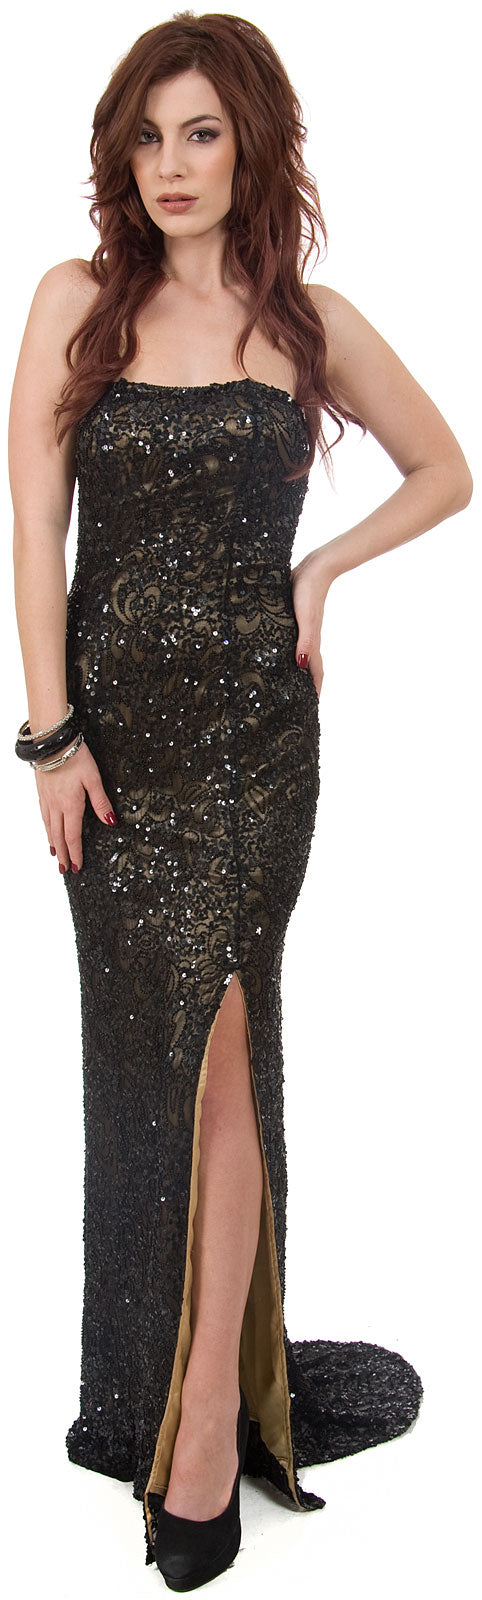 Main image of Strapless Beaded Formal Prom Dress With Train & Front Slit